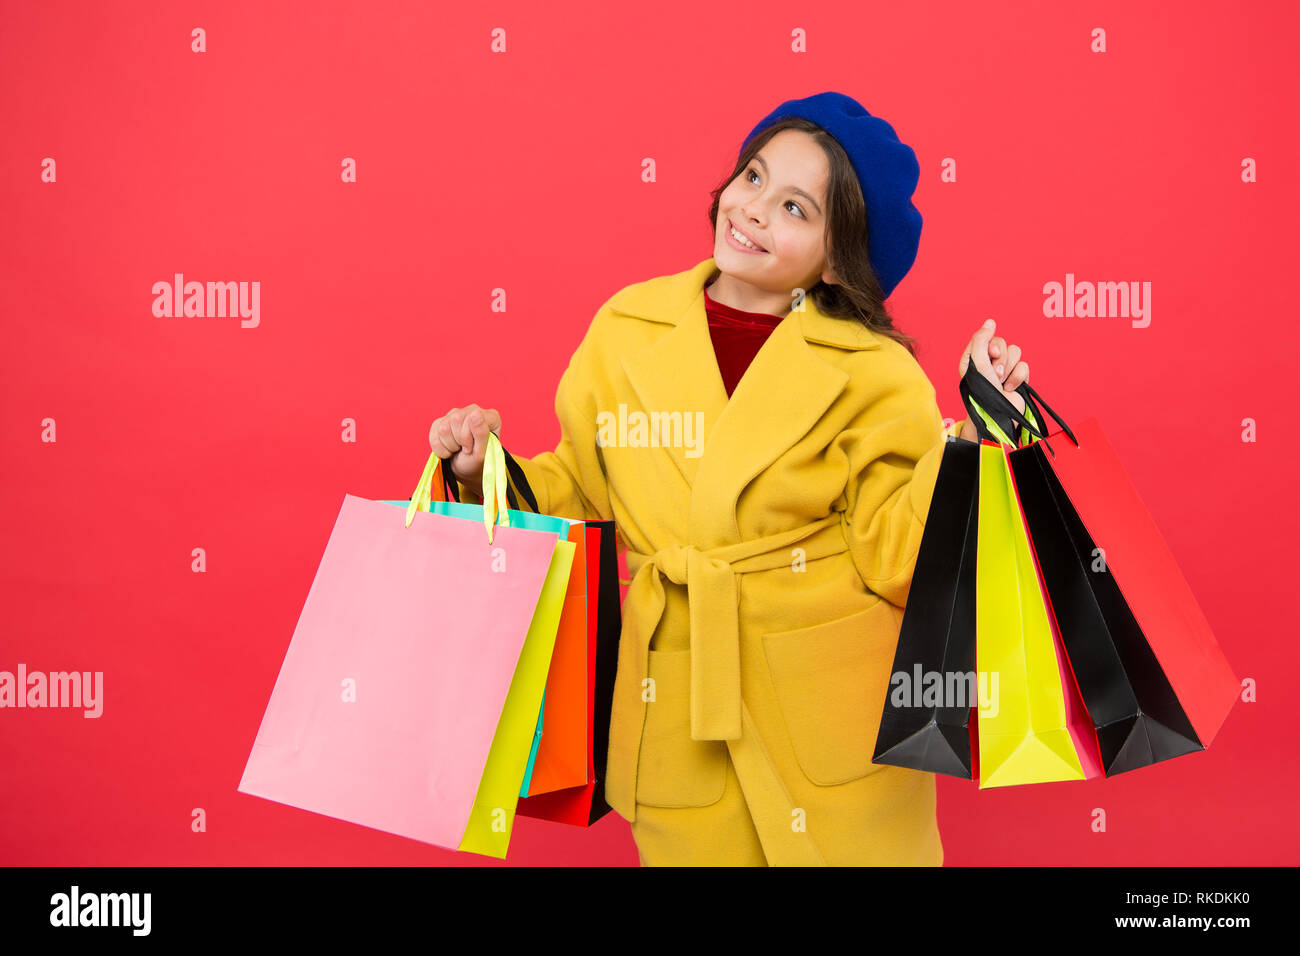 Prime time buy spring clothing. Obsessed with shopping. Girl cute kid hold shopping bags. Get discount shopping on birthday holiday. Nice purchase. Fashionista enjoy shopping. Customer satisfaction. - Stock Image